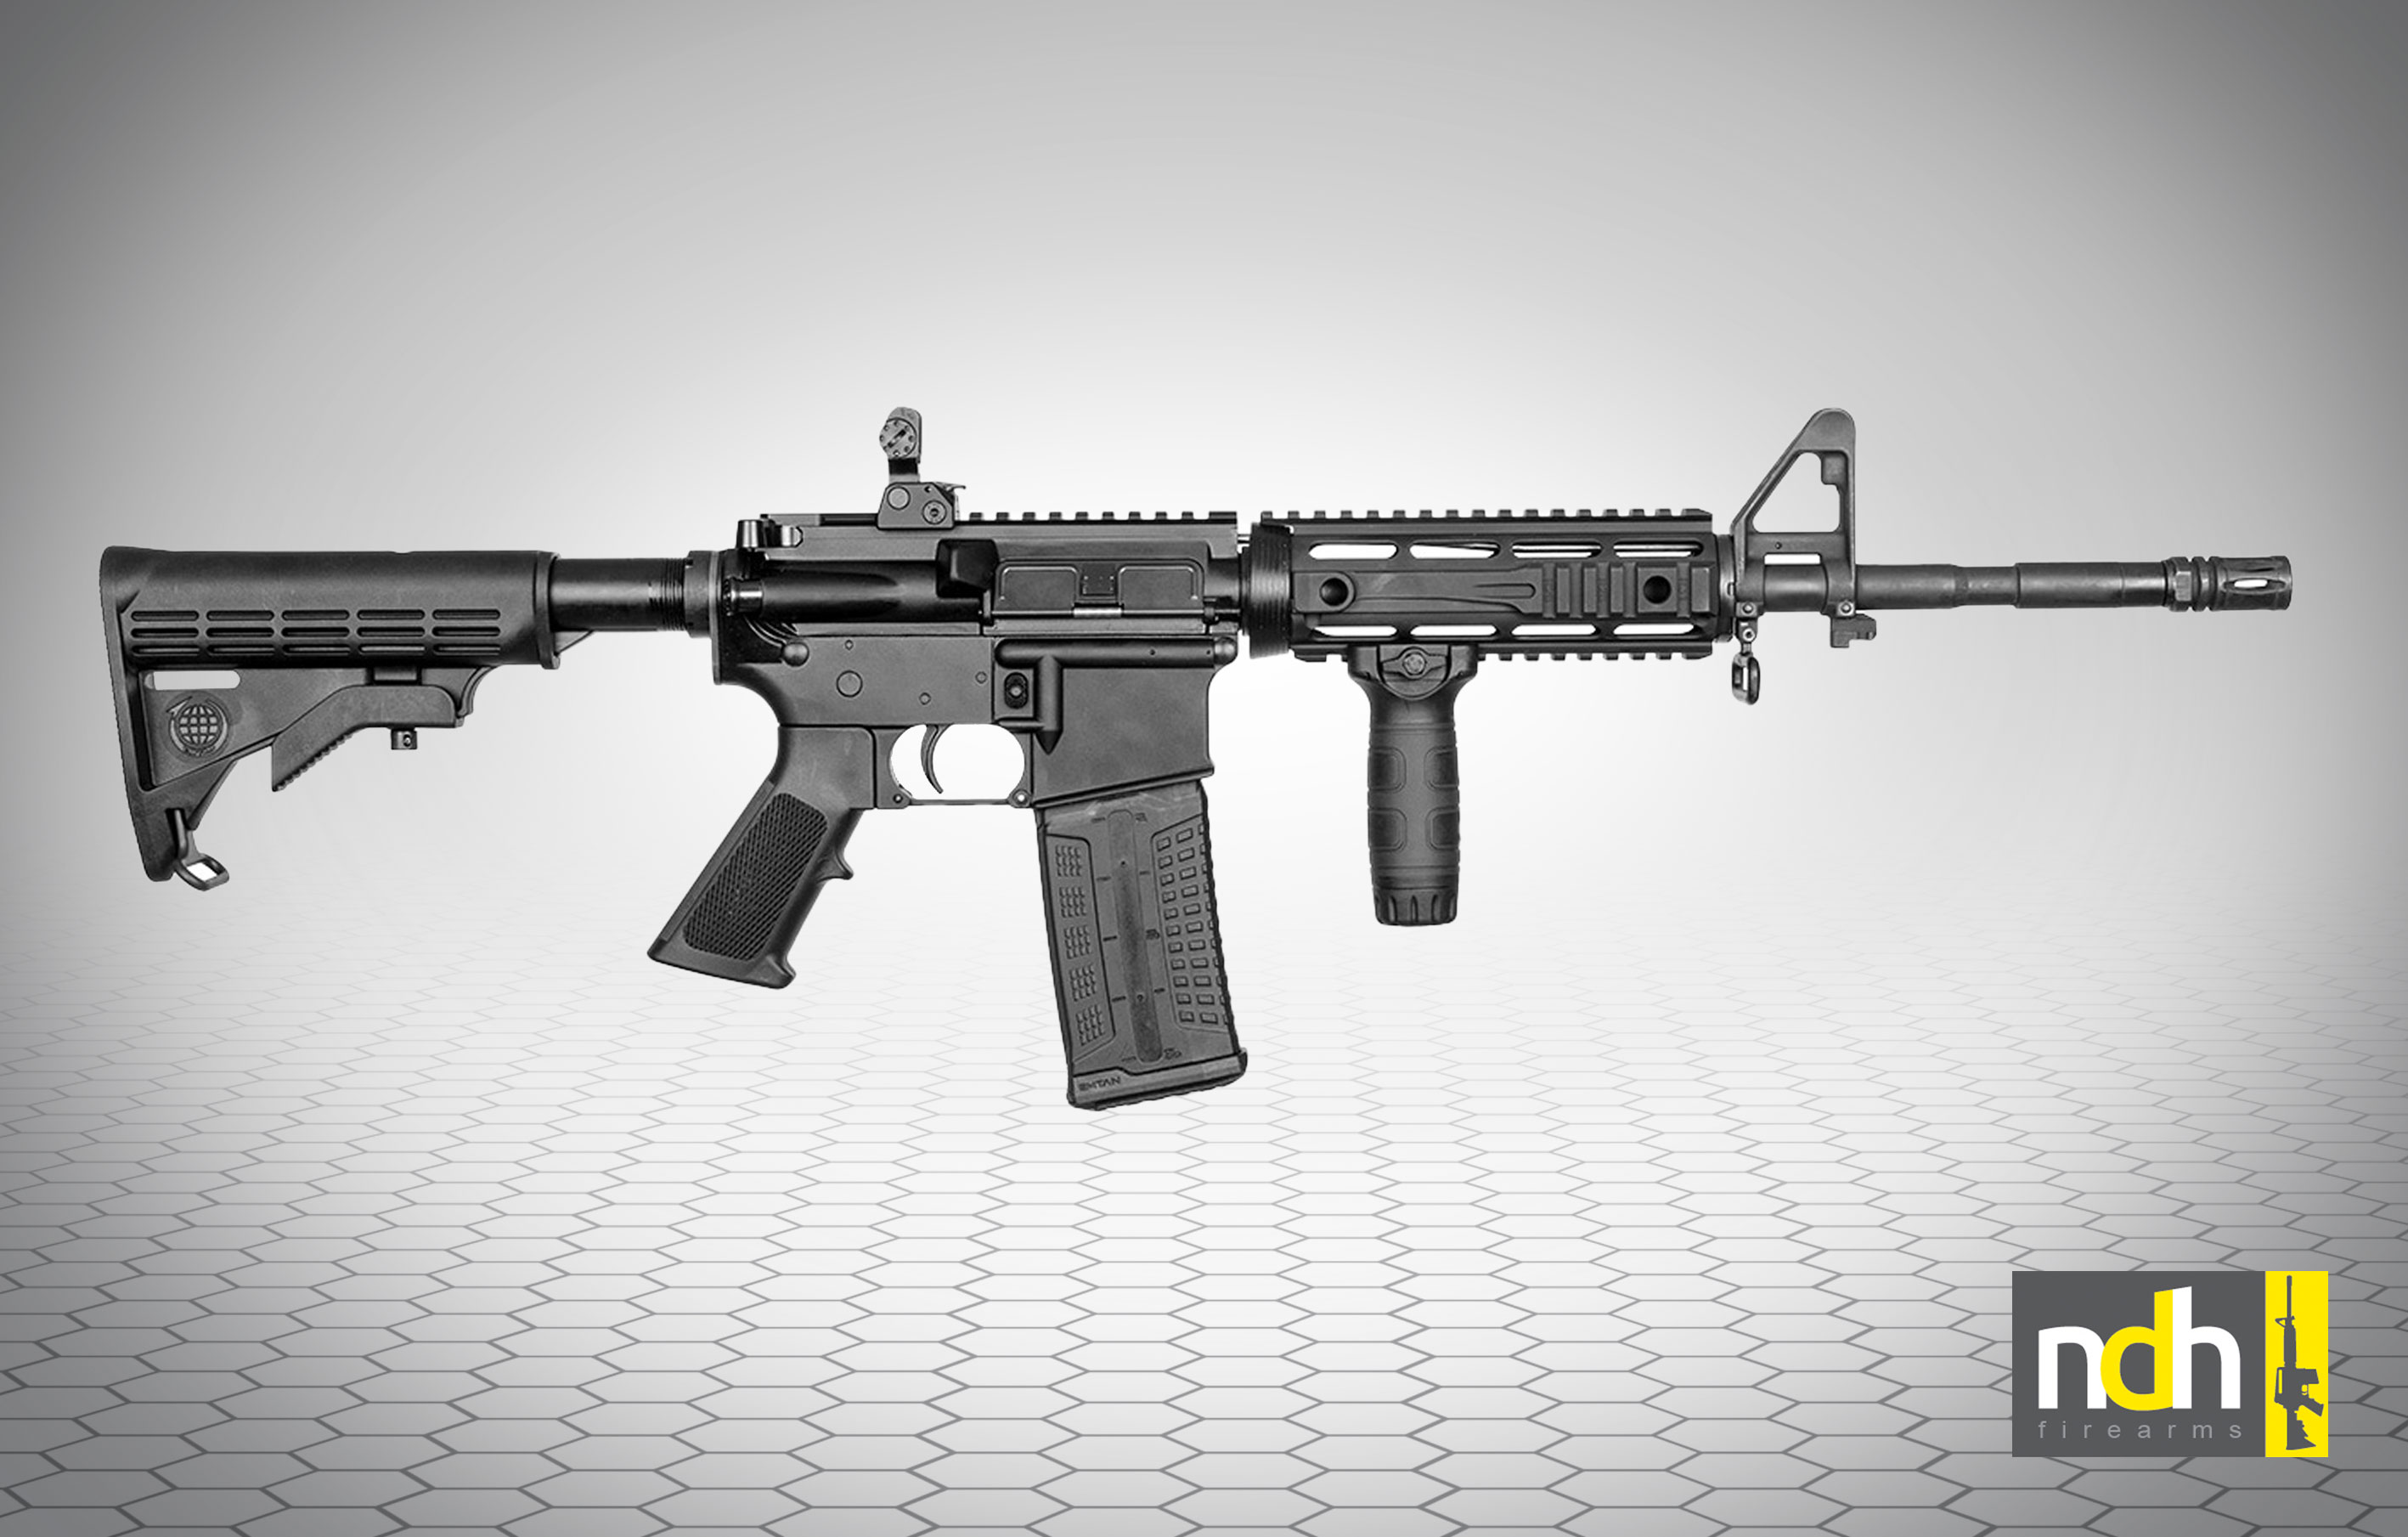 emtan-m4-select-fire-5-56-nato-14-5-quot-assault-rifle